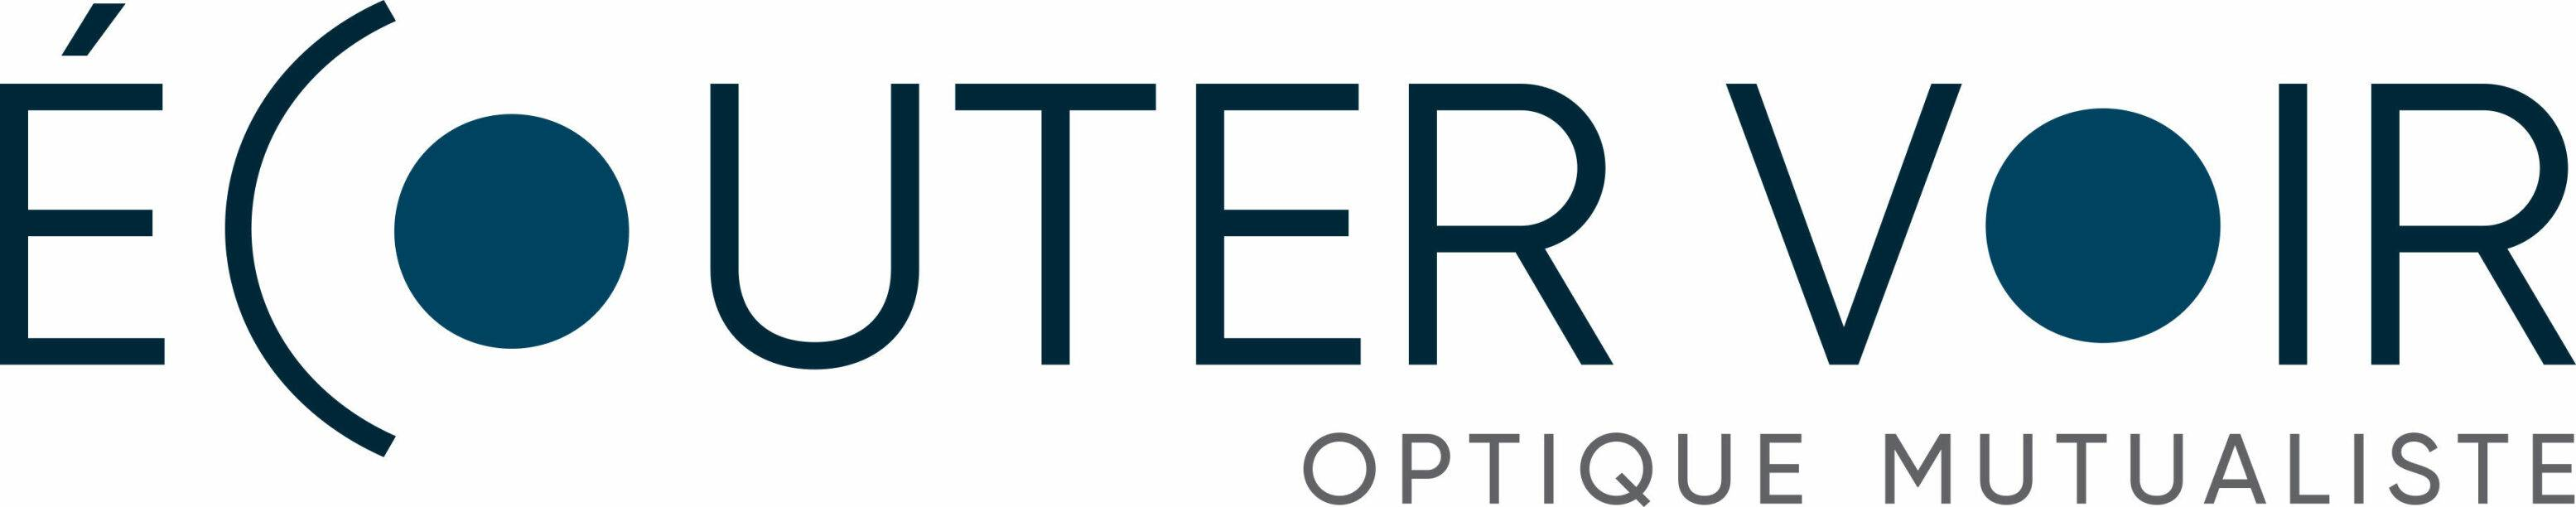 Logo opticien mutualiste